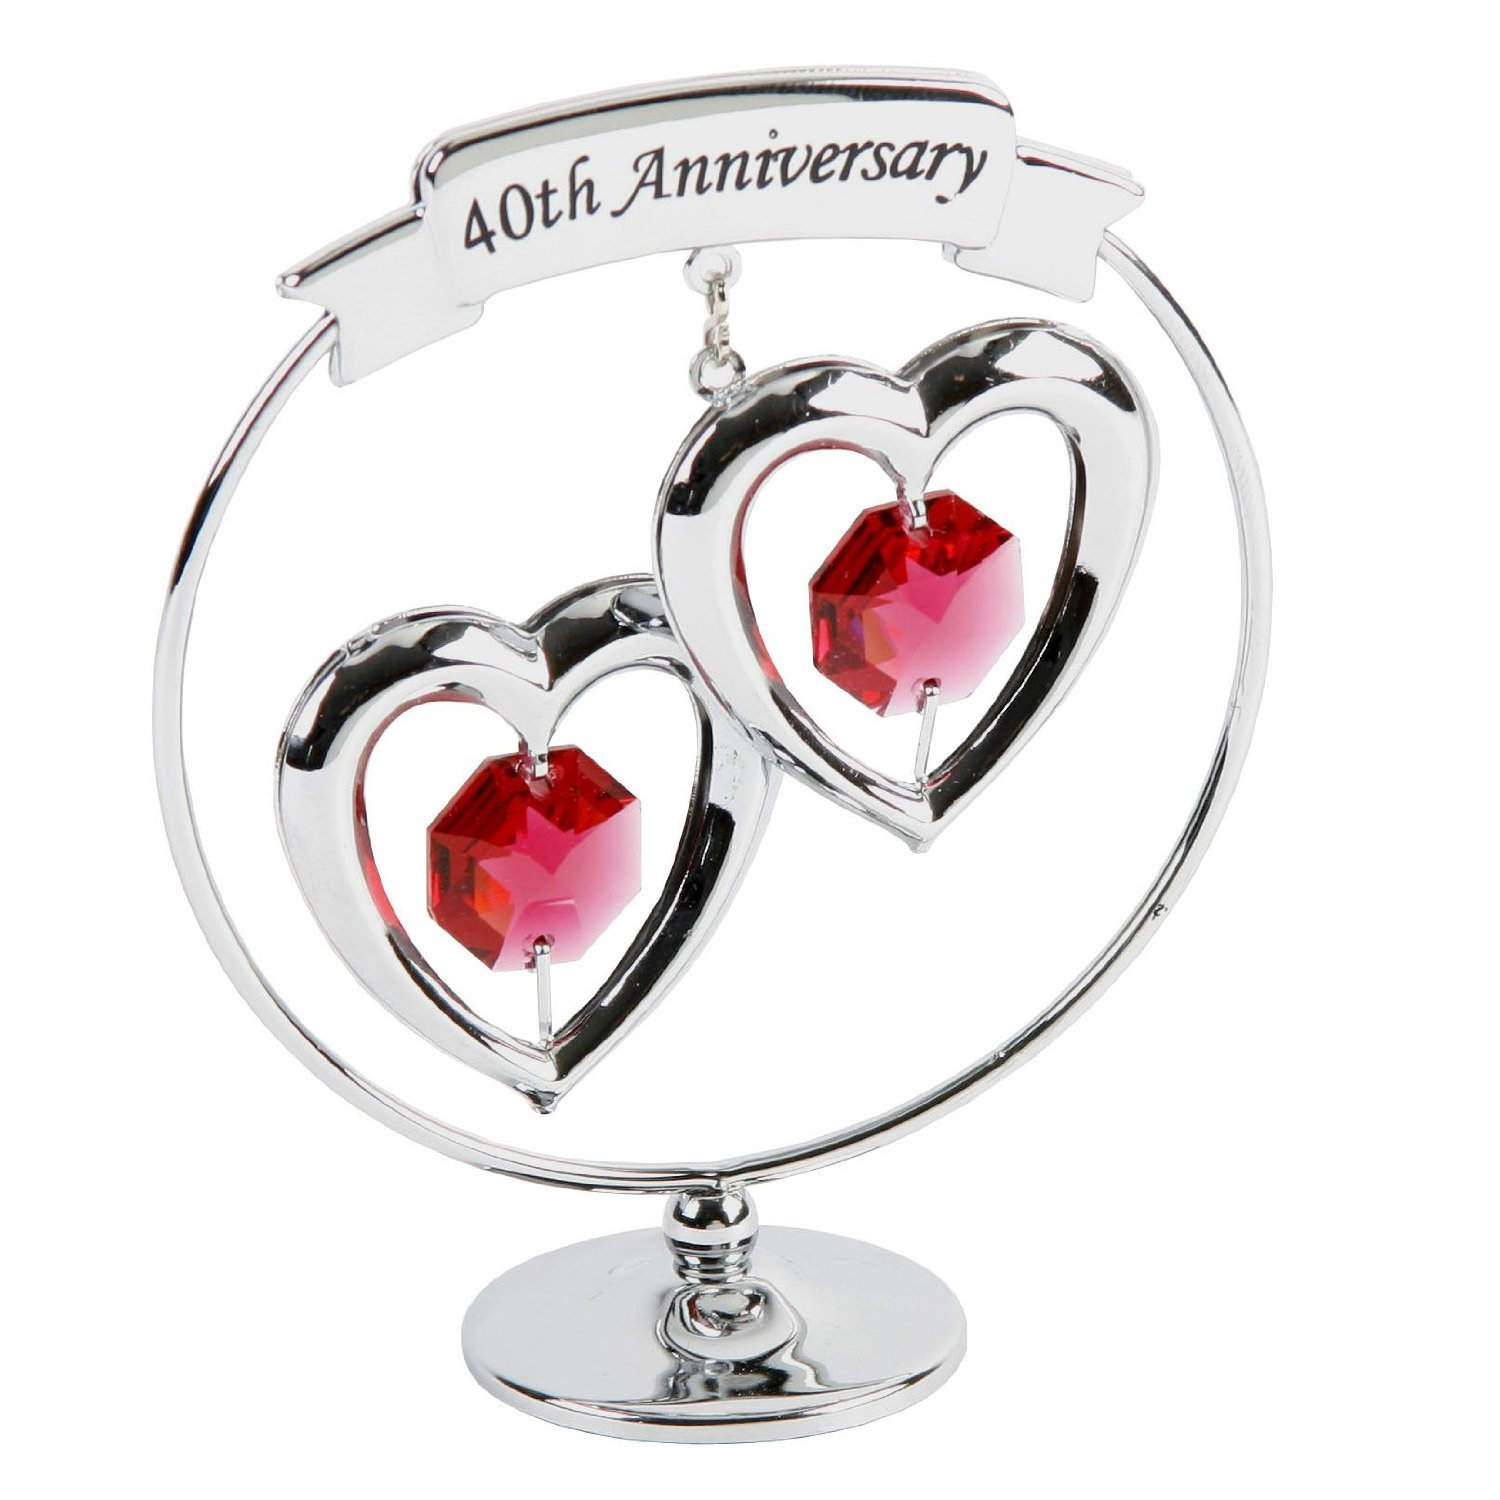 40th anniversary traditional gift ideas